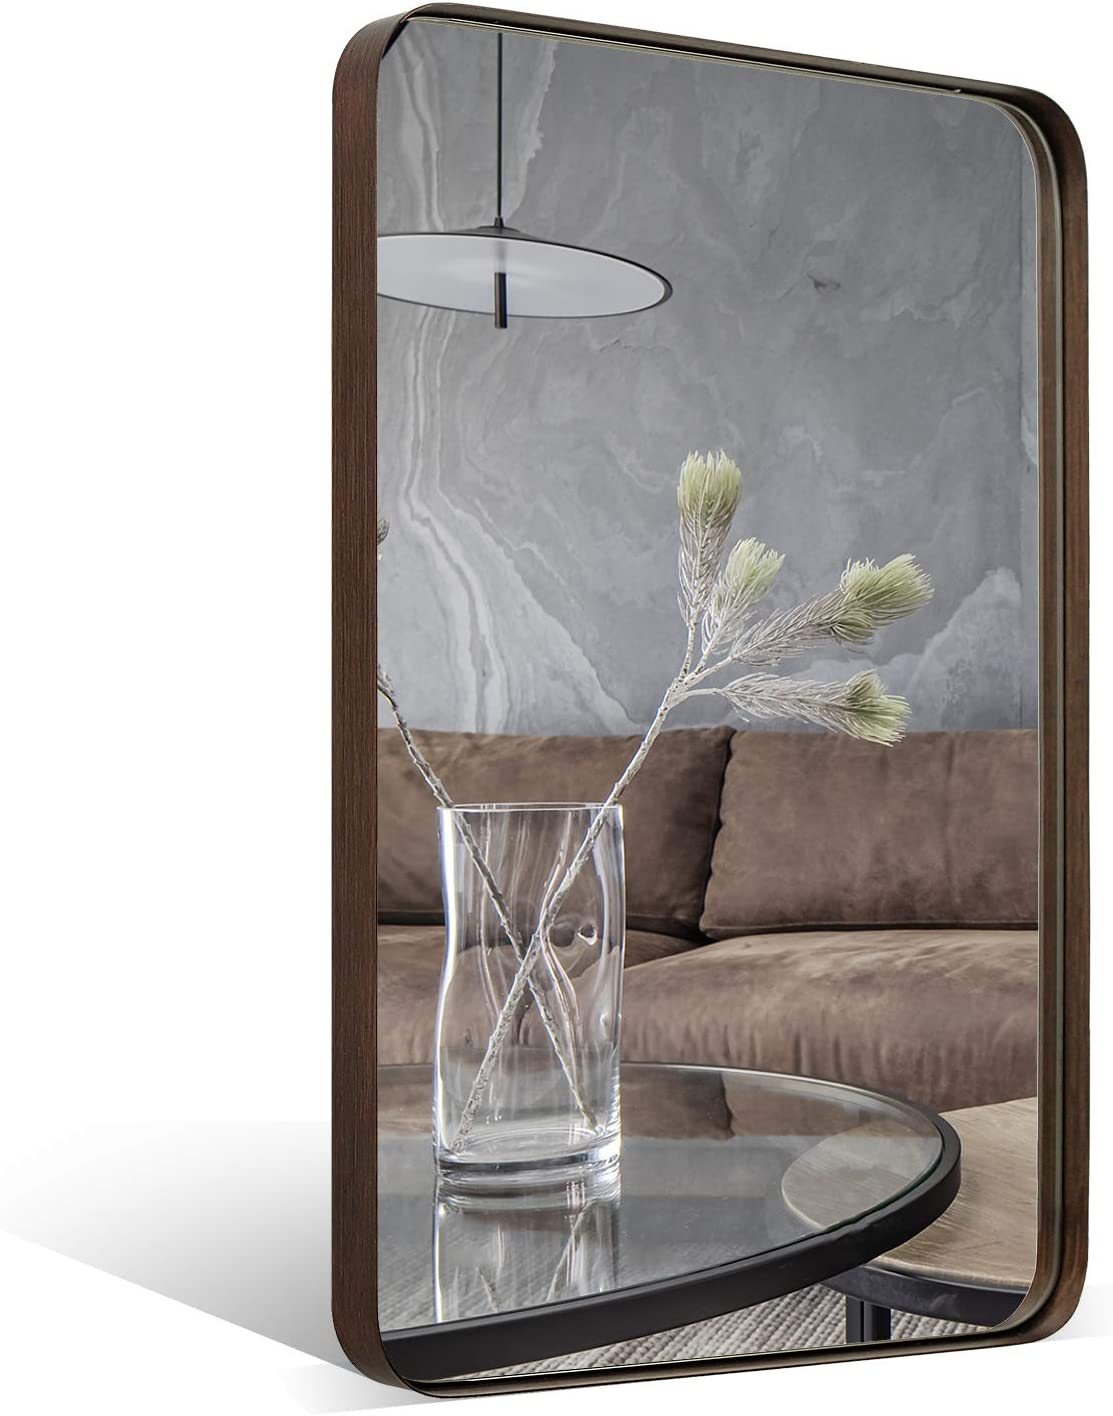 ANDY STAR Wall Mirror Brushed Bronze | 22x30'' Contemporary Rectangular Stainless Steel Metal Frame Rounded Corner 1'' Deep Set Design for Bathroom